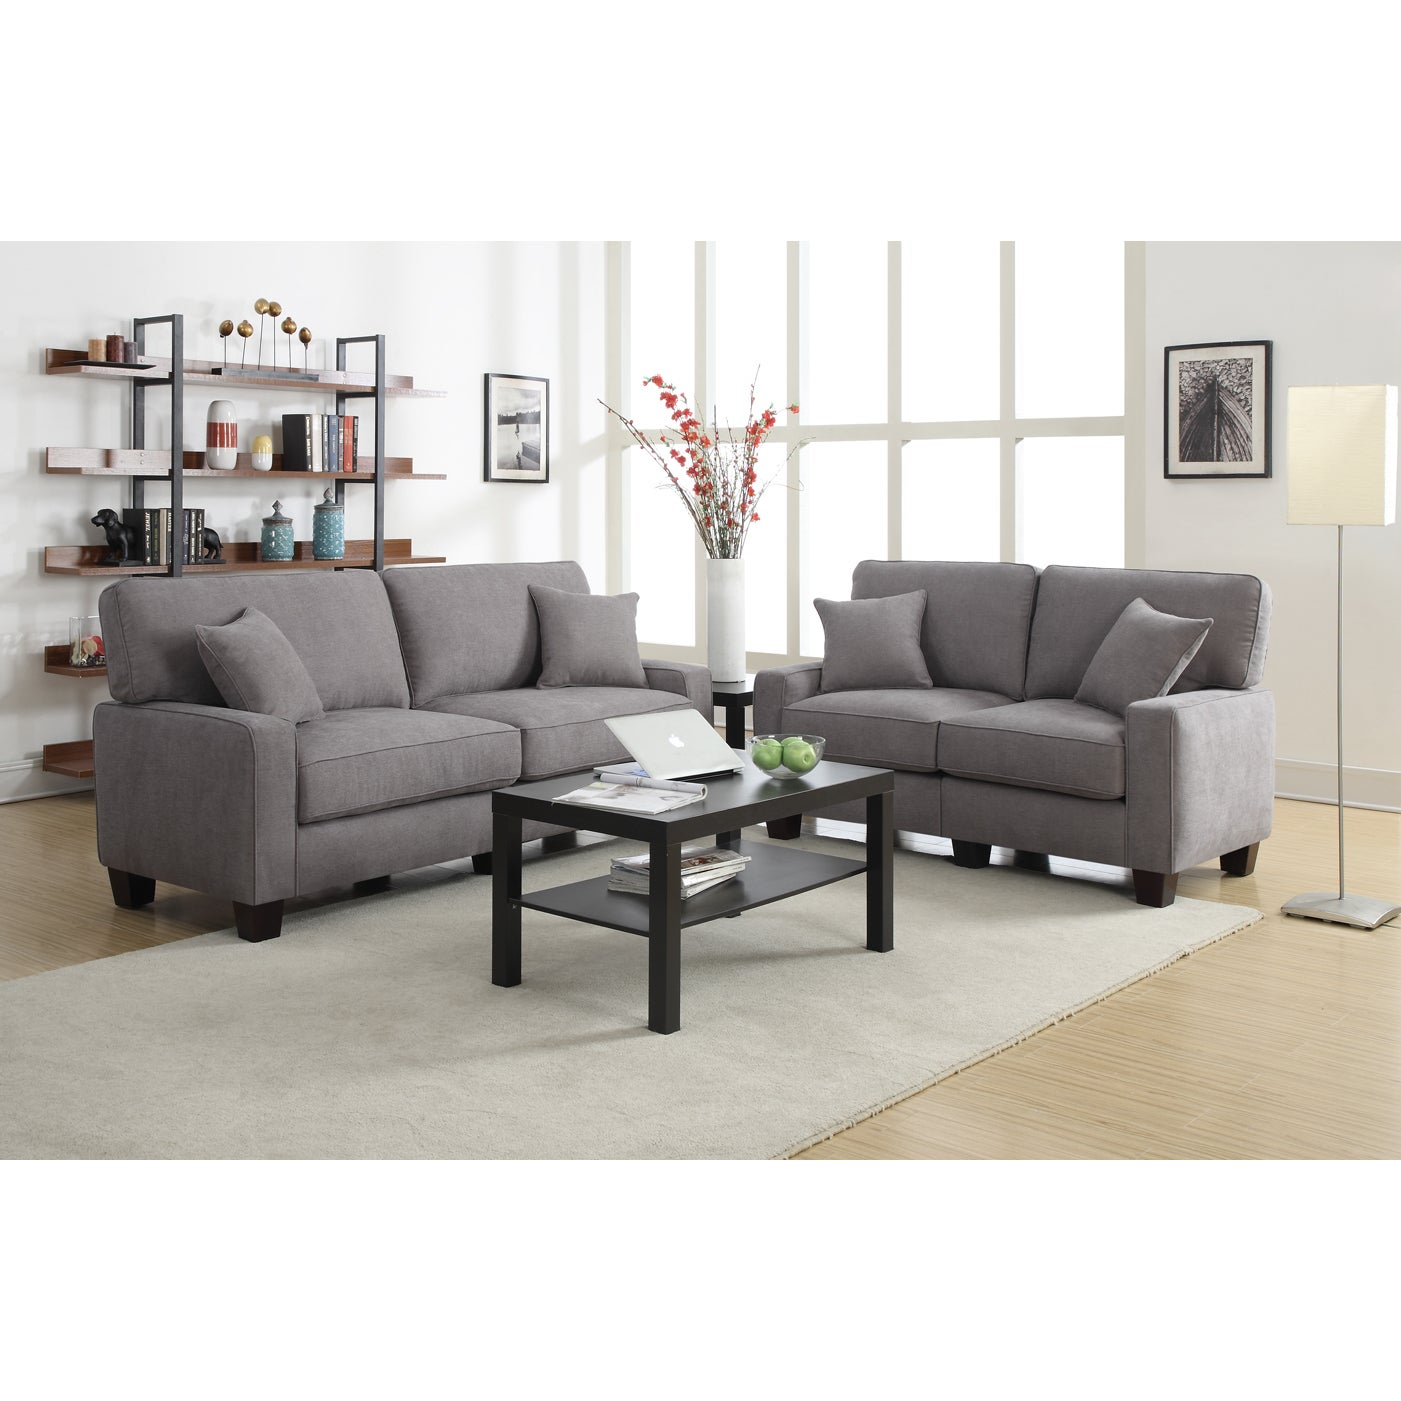 Serta RTA Palisades Collection 73-inch Glacial Grey Sofa - Free ...